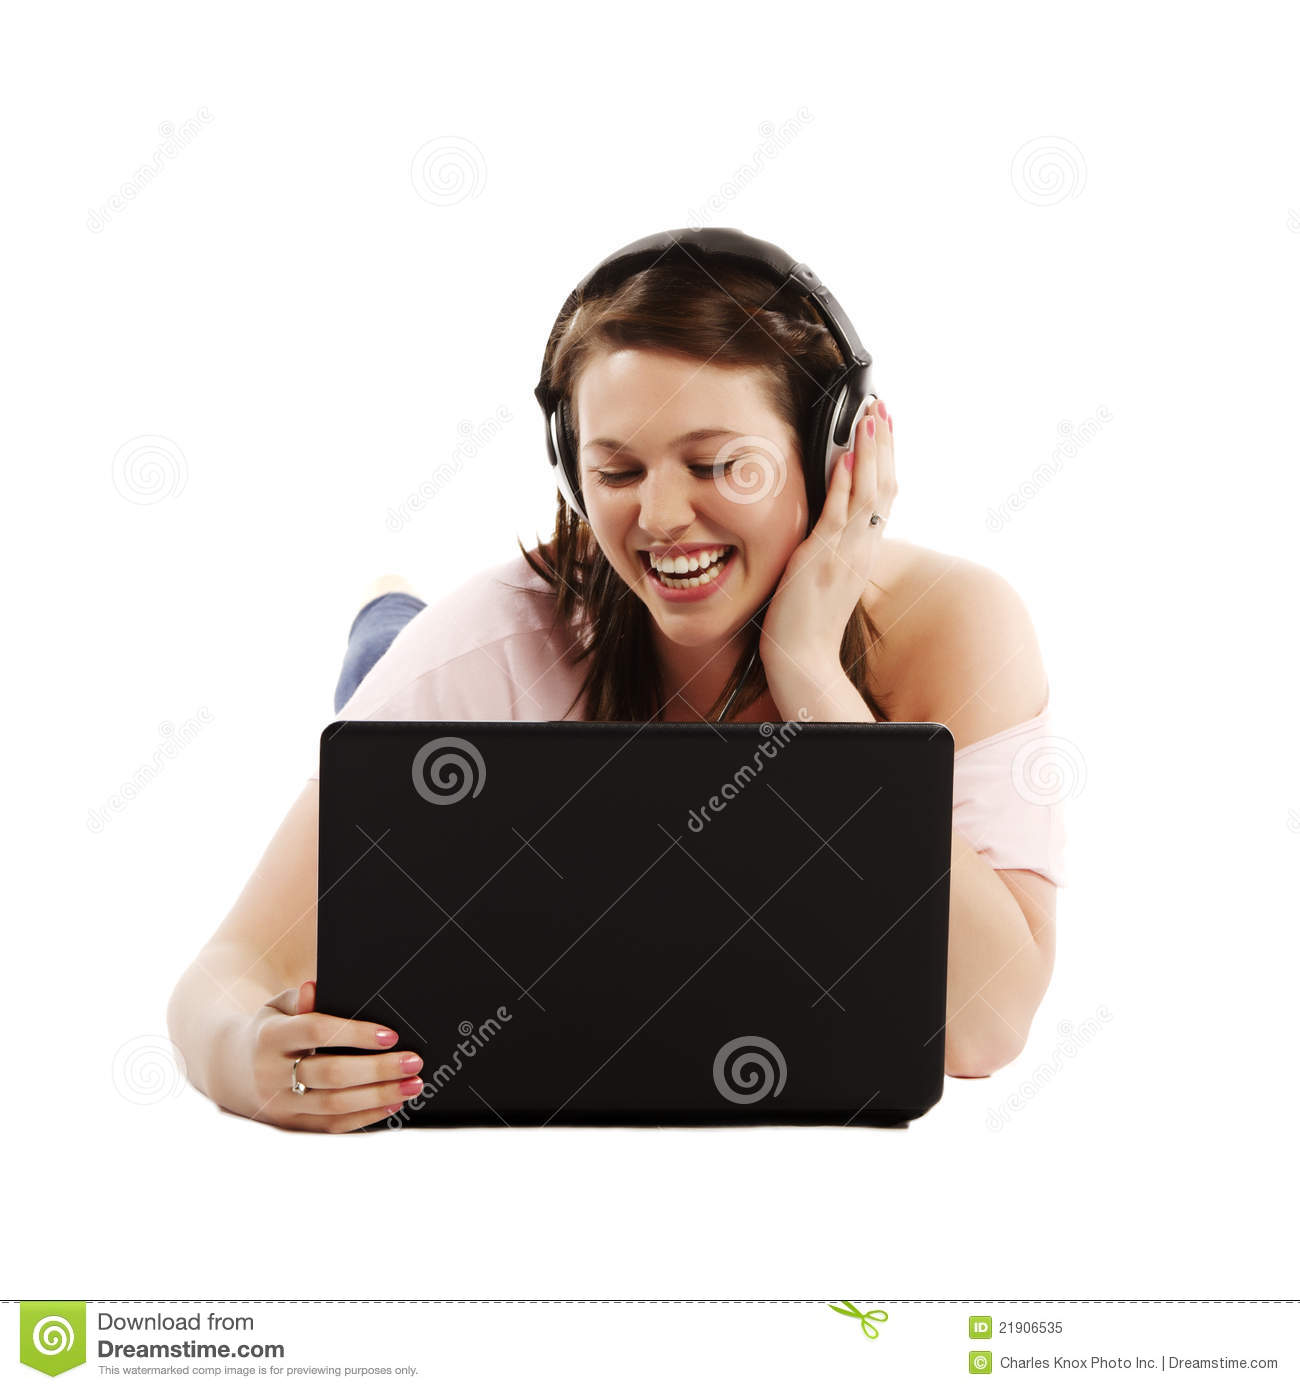 Casual student listening to music on her laptop while studying over